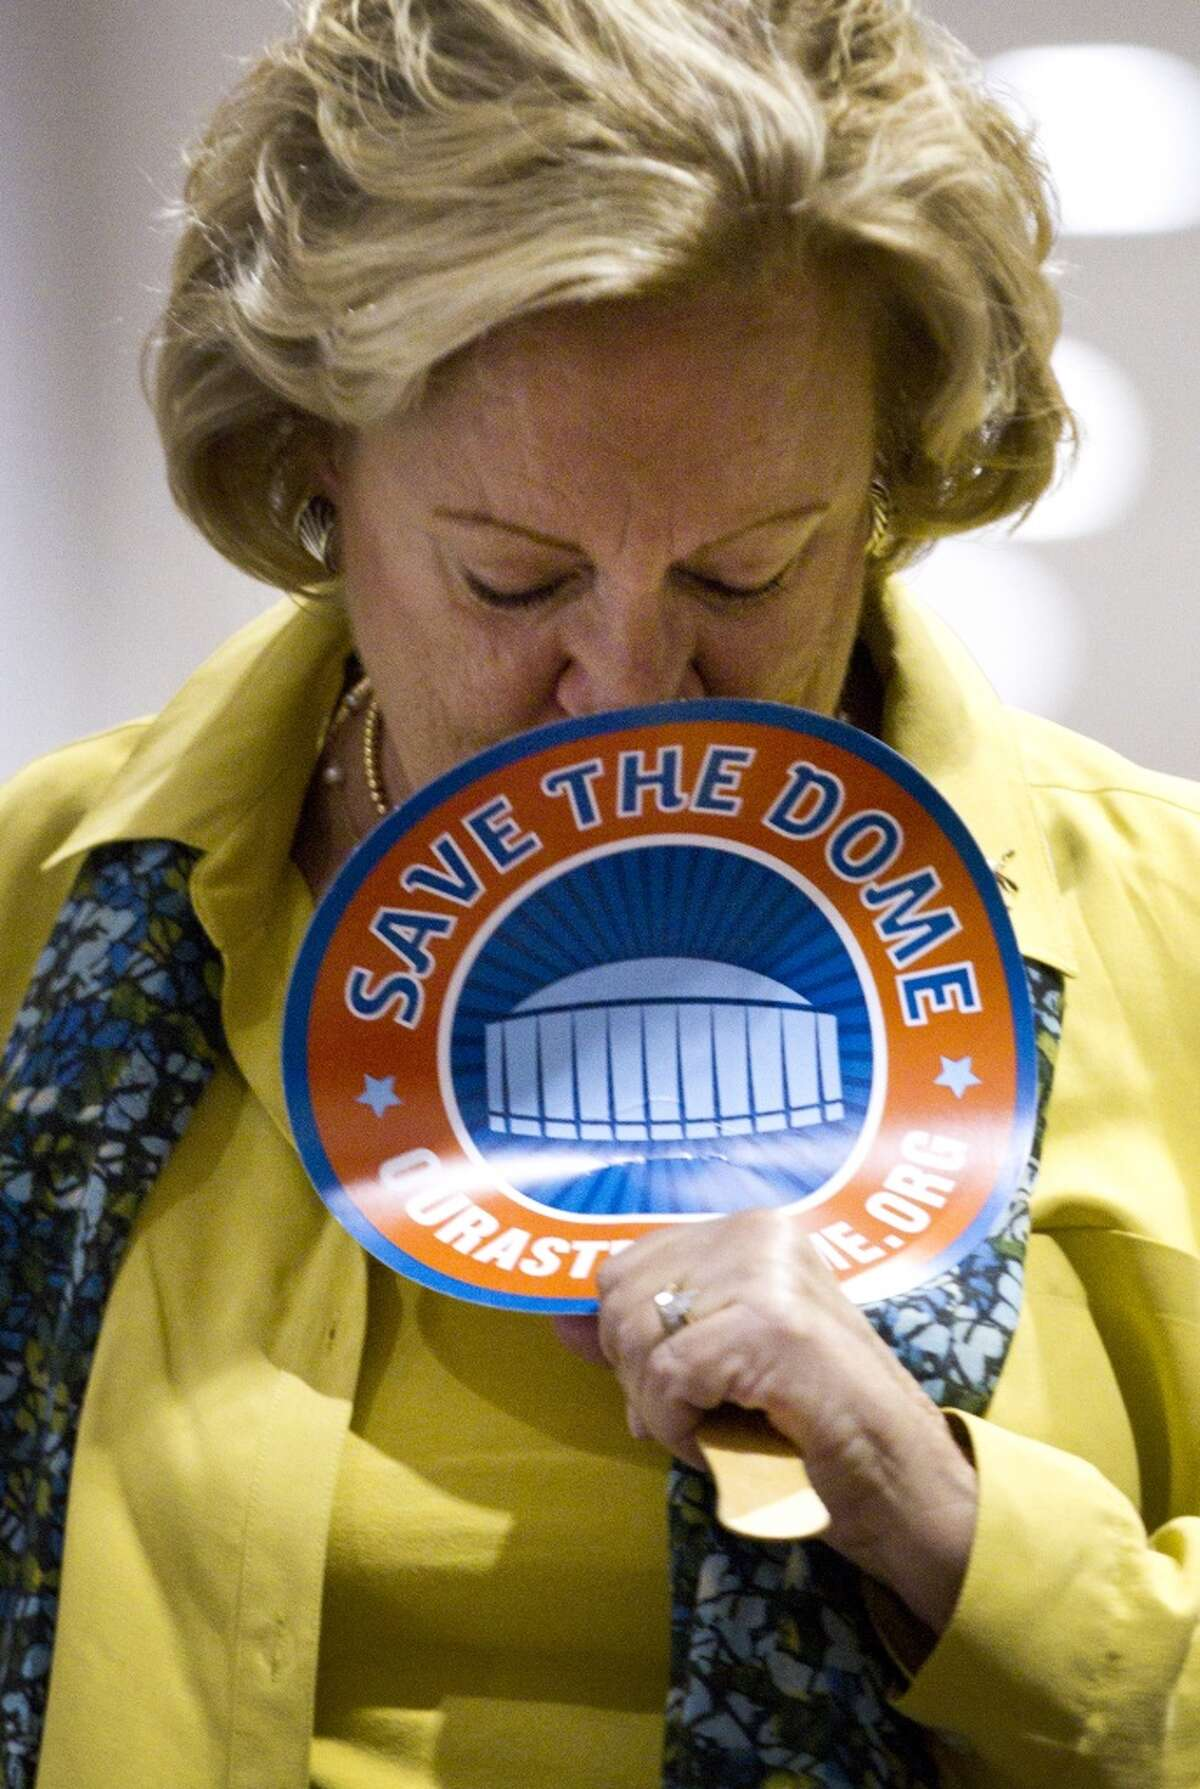 Astrodome renovation supporter Sally Allen, of Kingwood, reacts as it is announced that the proposal to renovate the stadium was defeated Tuesday, Nov. 5, 2013, in Houston. Harris County voters struck down a $217 million proposal to renovate the Astrodome. ( Brett Coomer / Houston Chronicle )